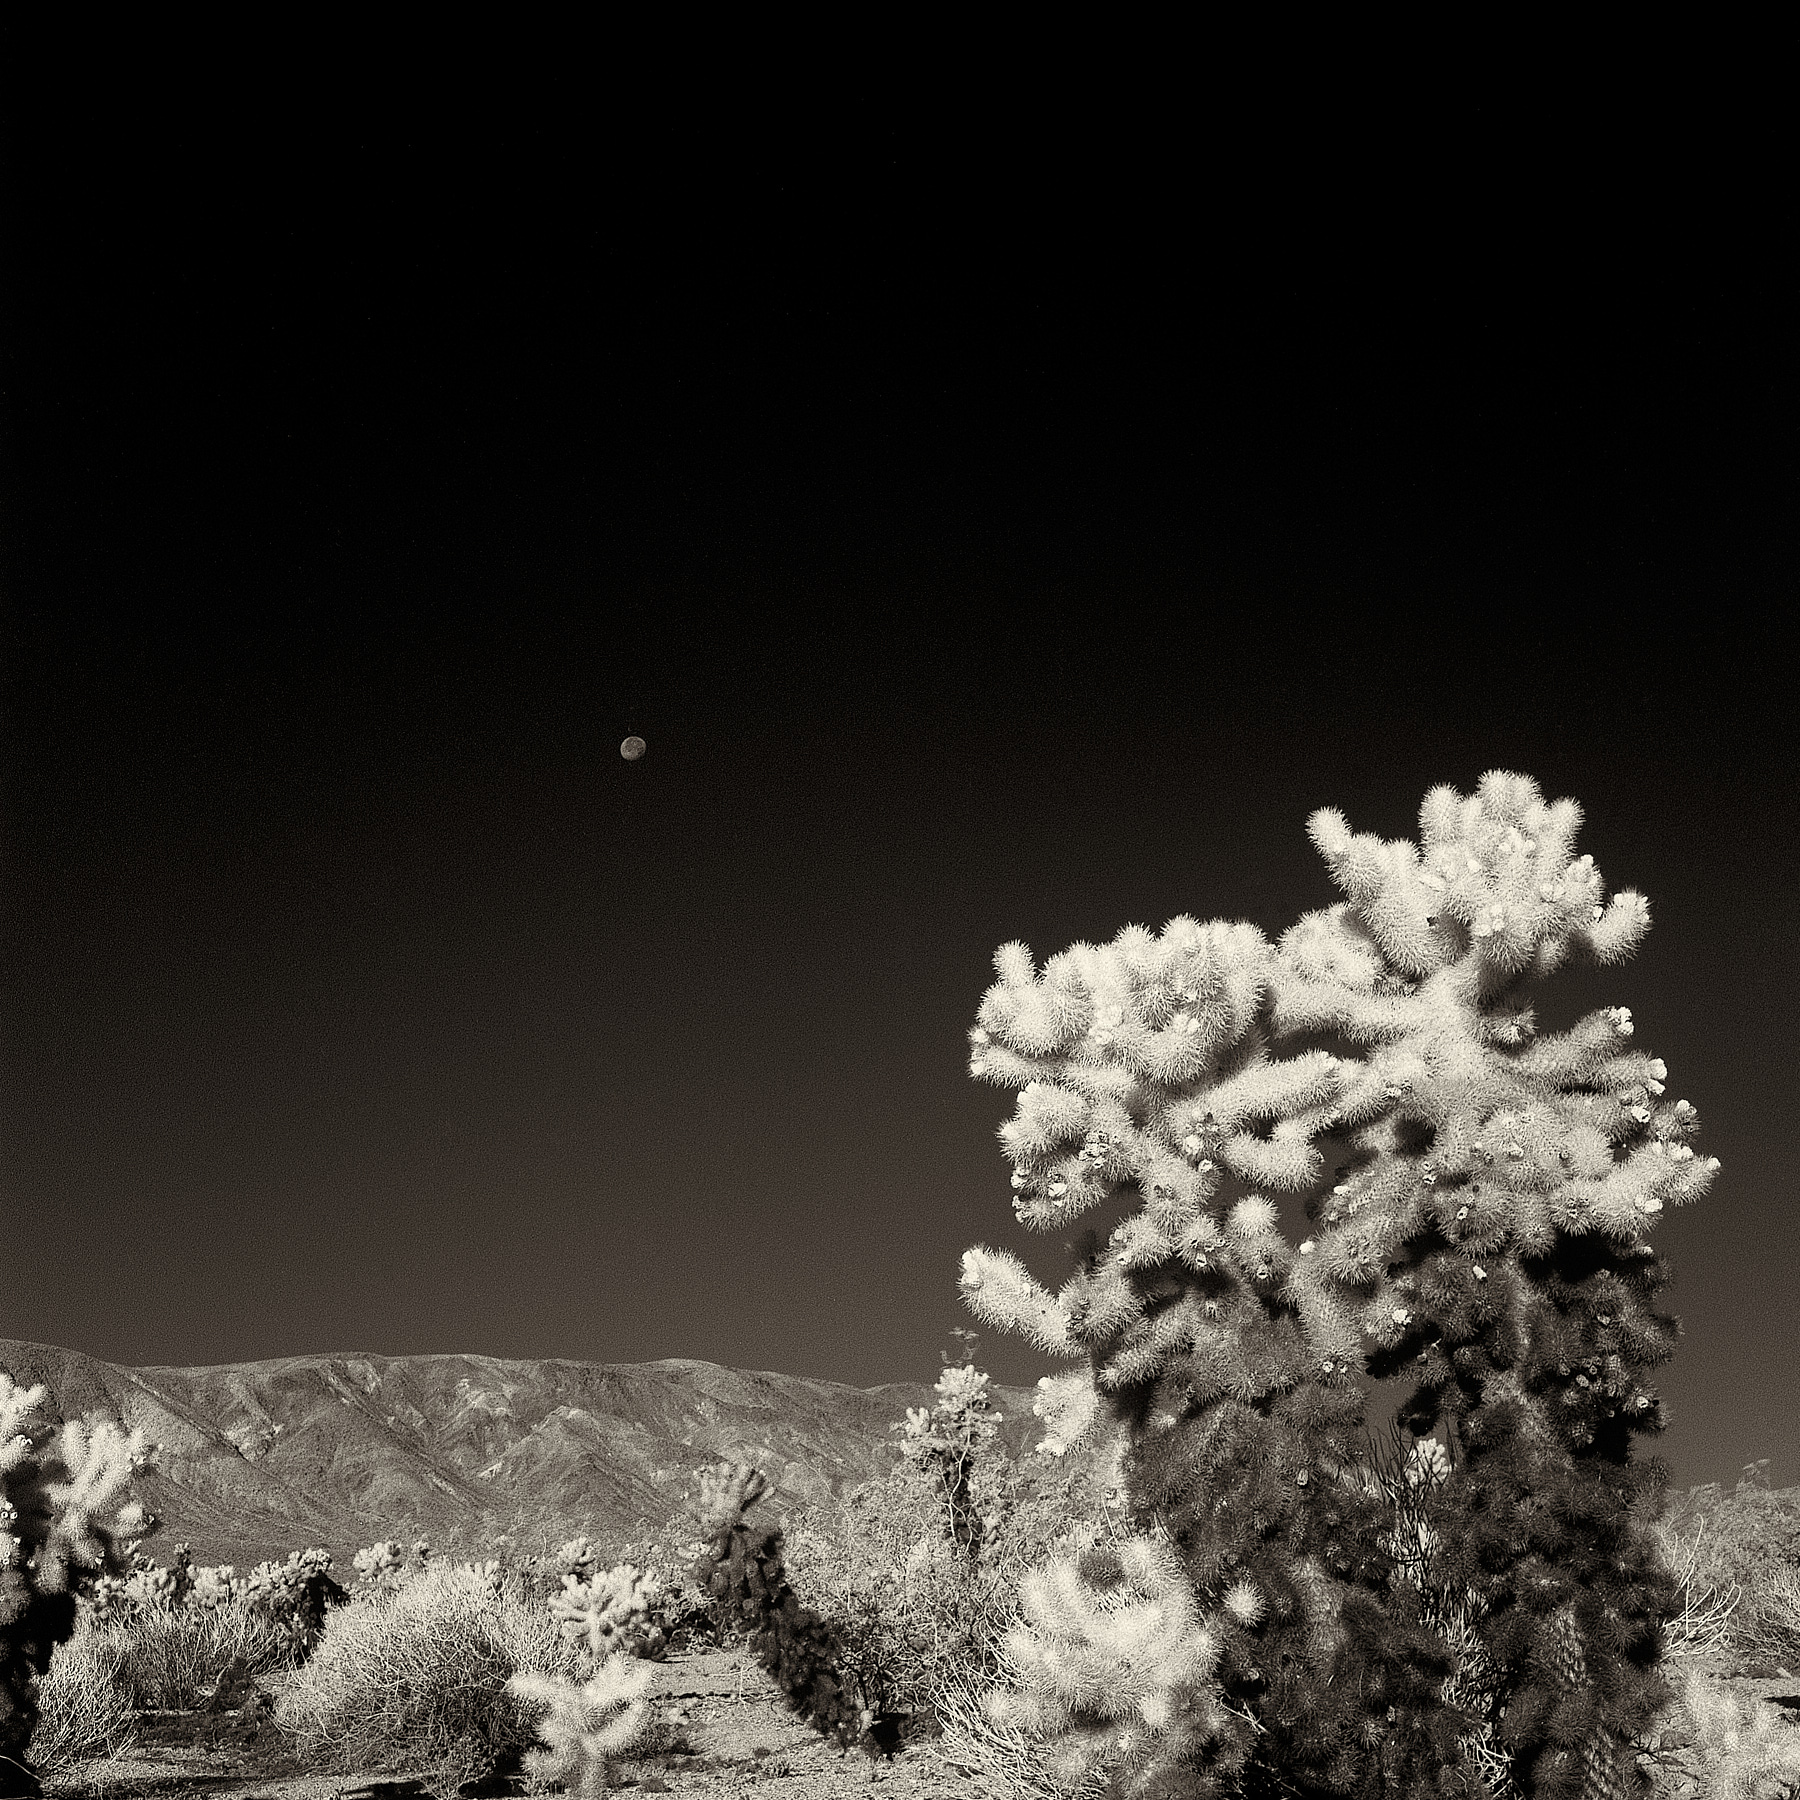 Joshua Tree and a moon_Infrared Landscape Charlie Sin